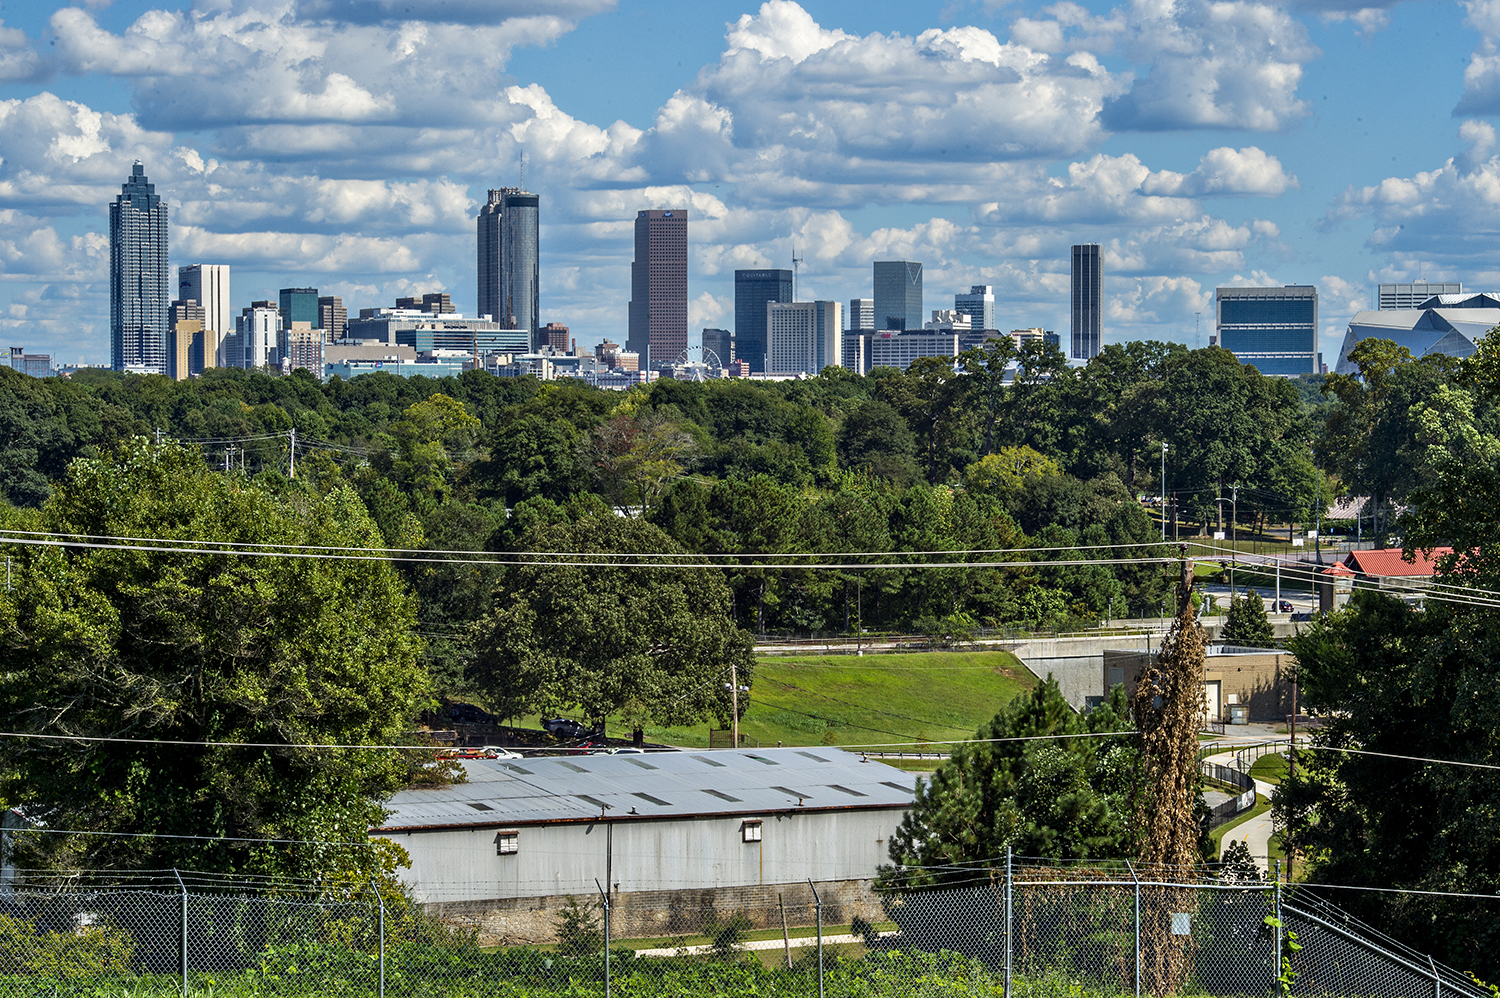 The Quarry Yards project's second phase is expected to offer city views like these.